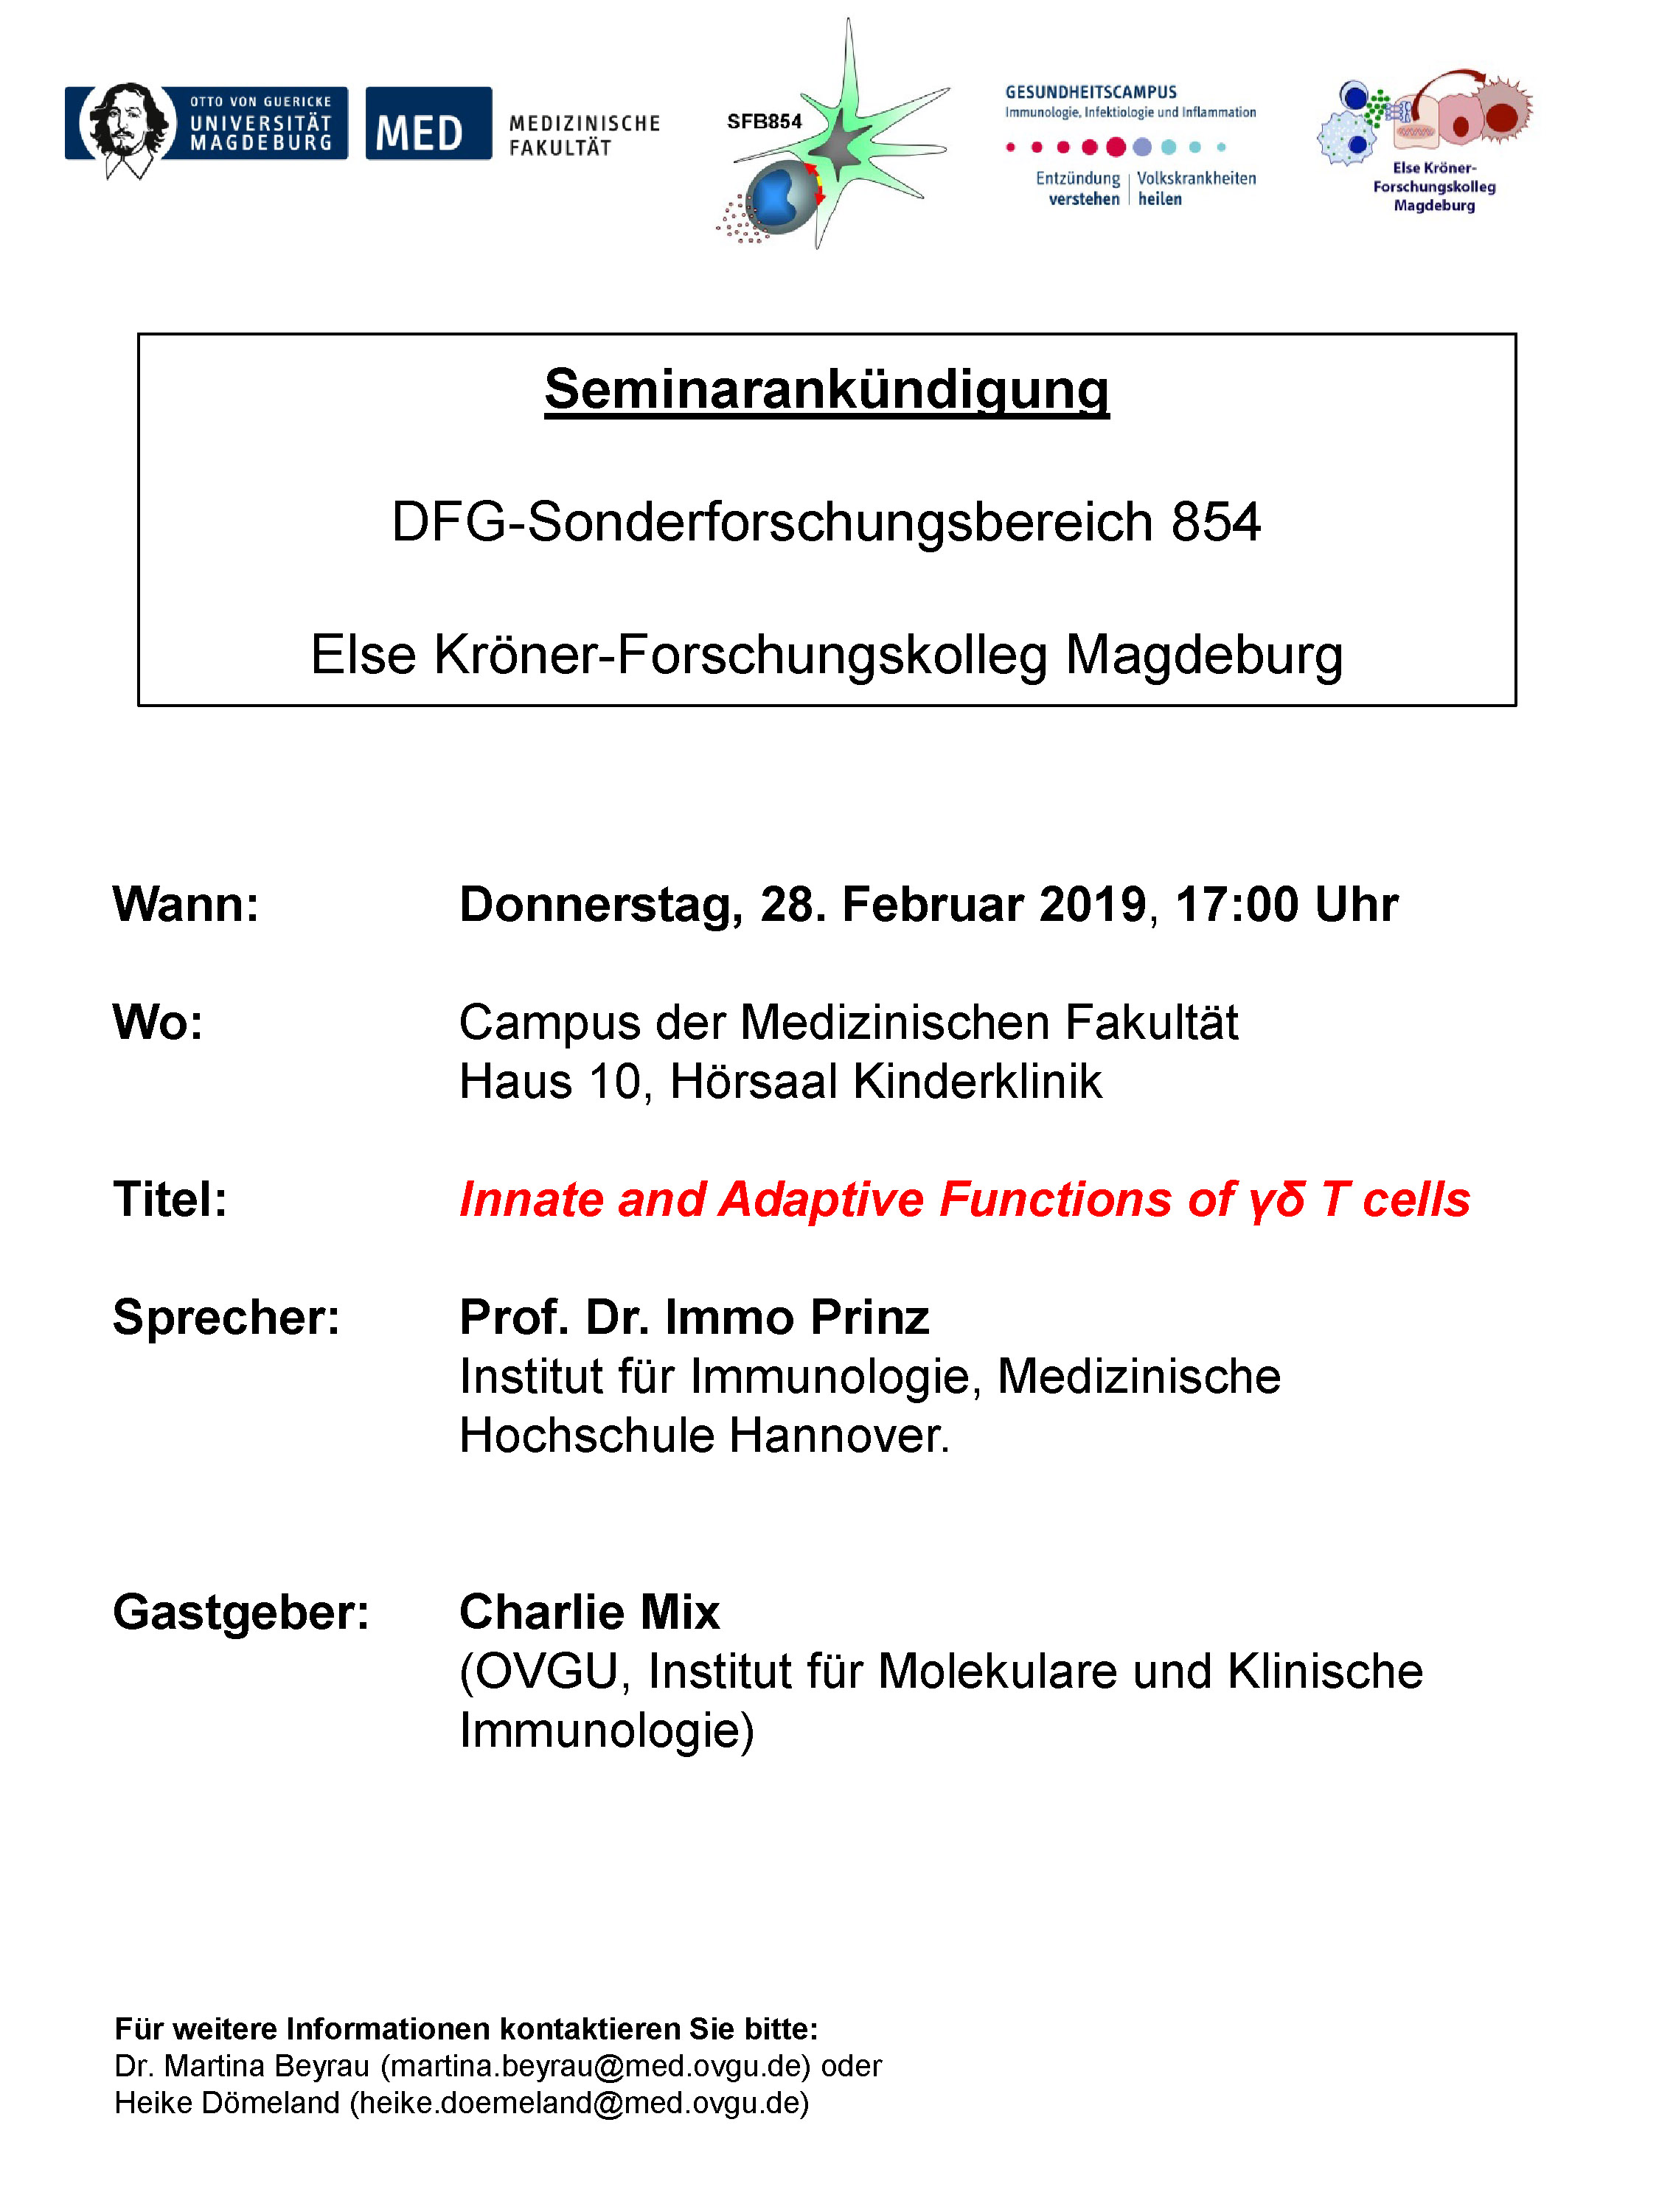 CRC 854 Seminar: Innate and Adaptive Functions of γδ T cells @ lecture hall of the children's hospital, House 10